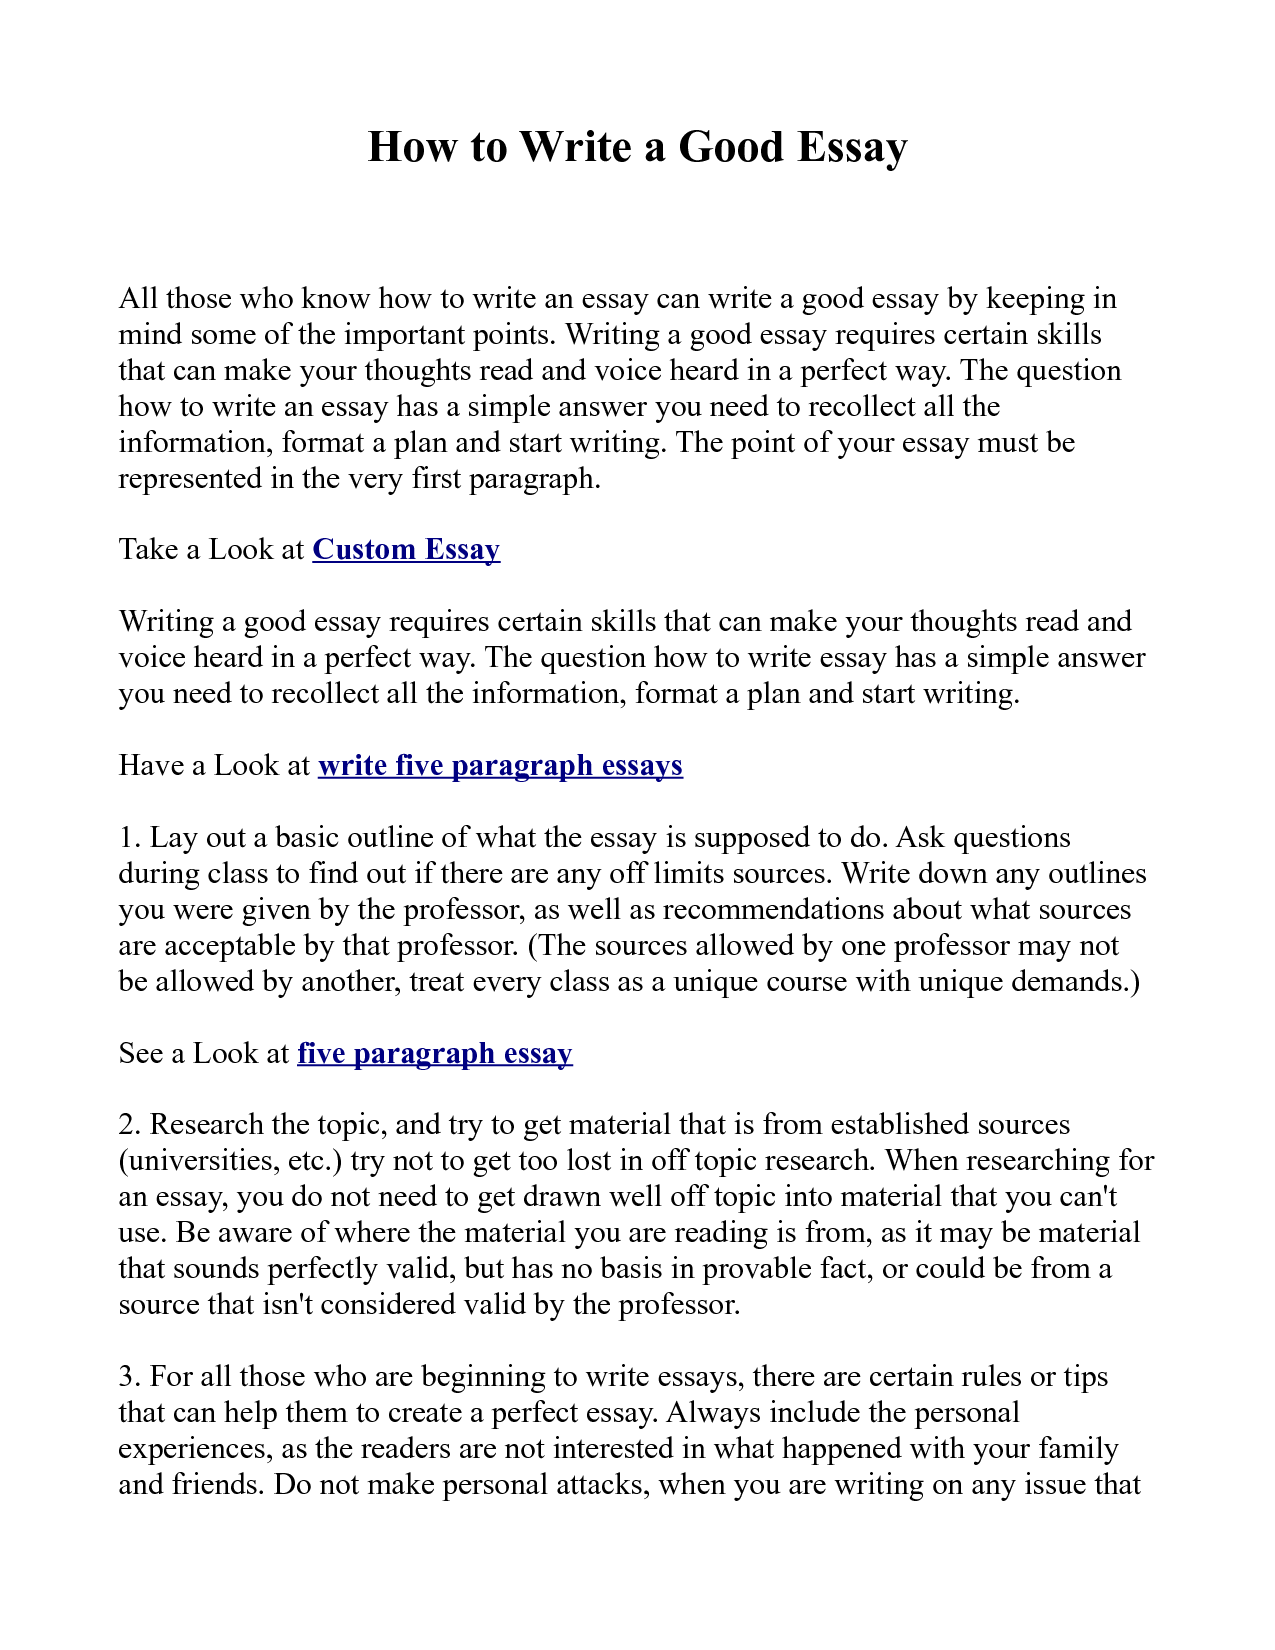 How to Write an Introduction to an Analytical Essay